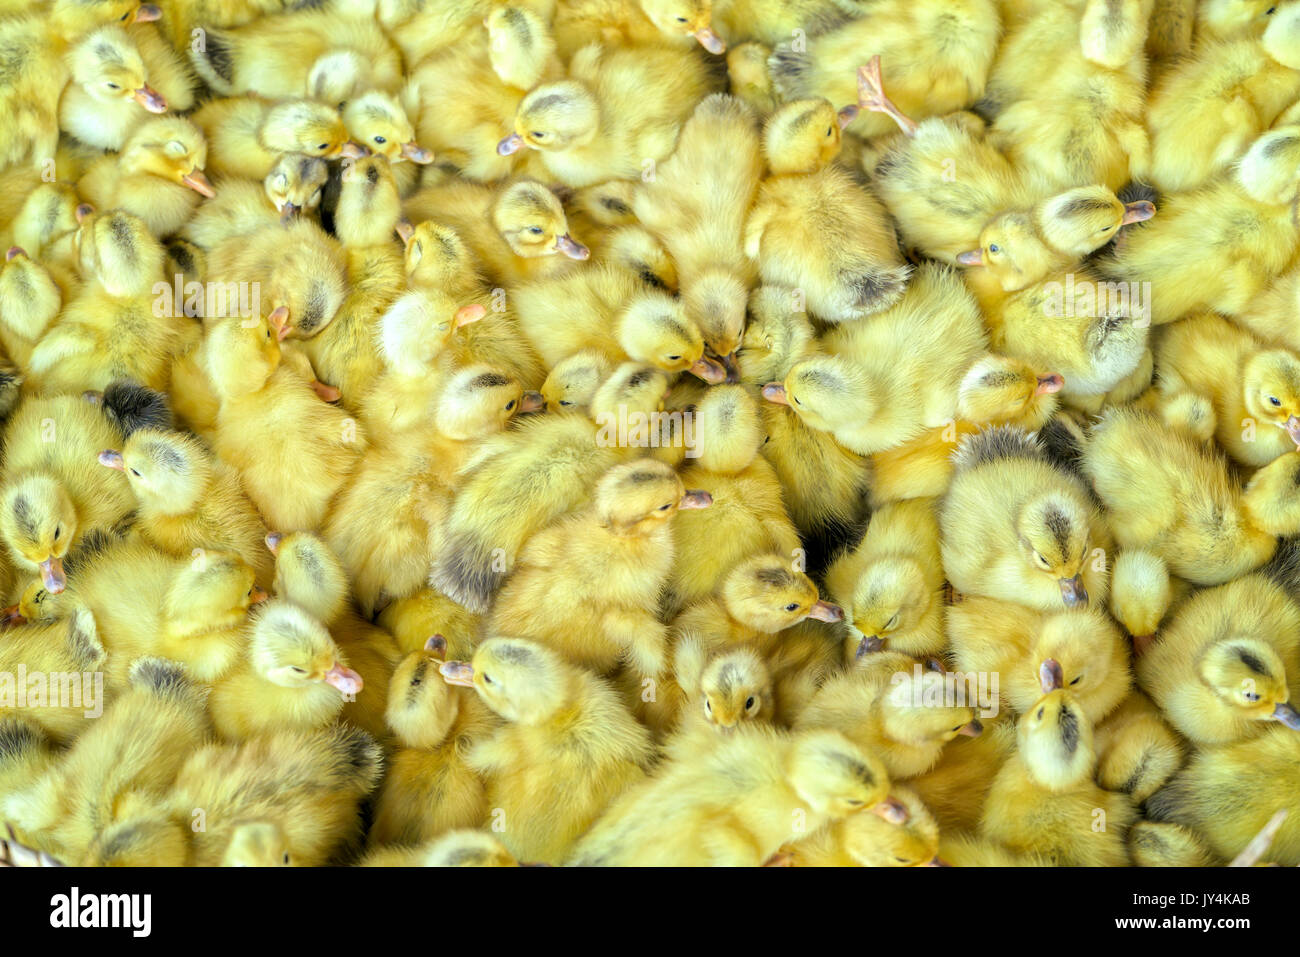 Group of yellow ducklings hatched in the nest is cute and lovely - Stock Image